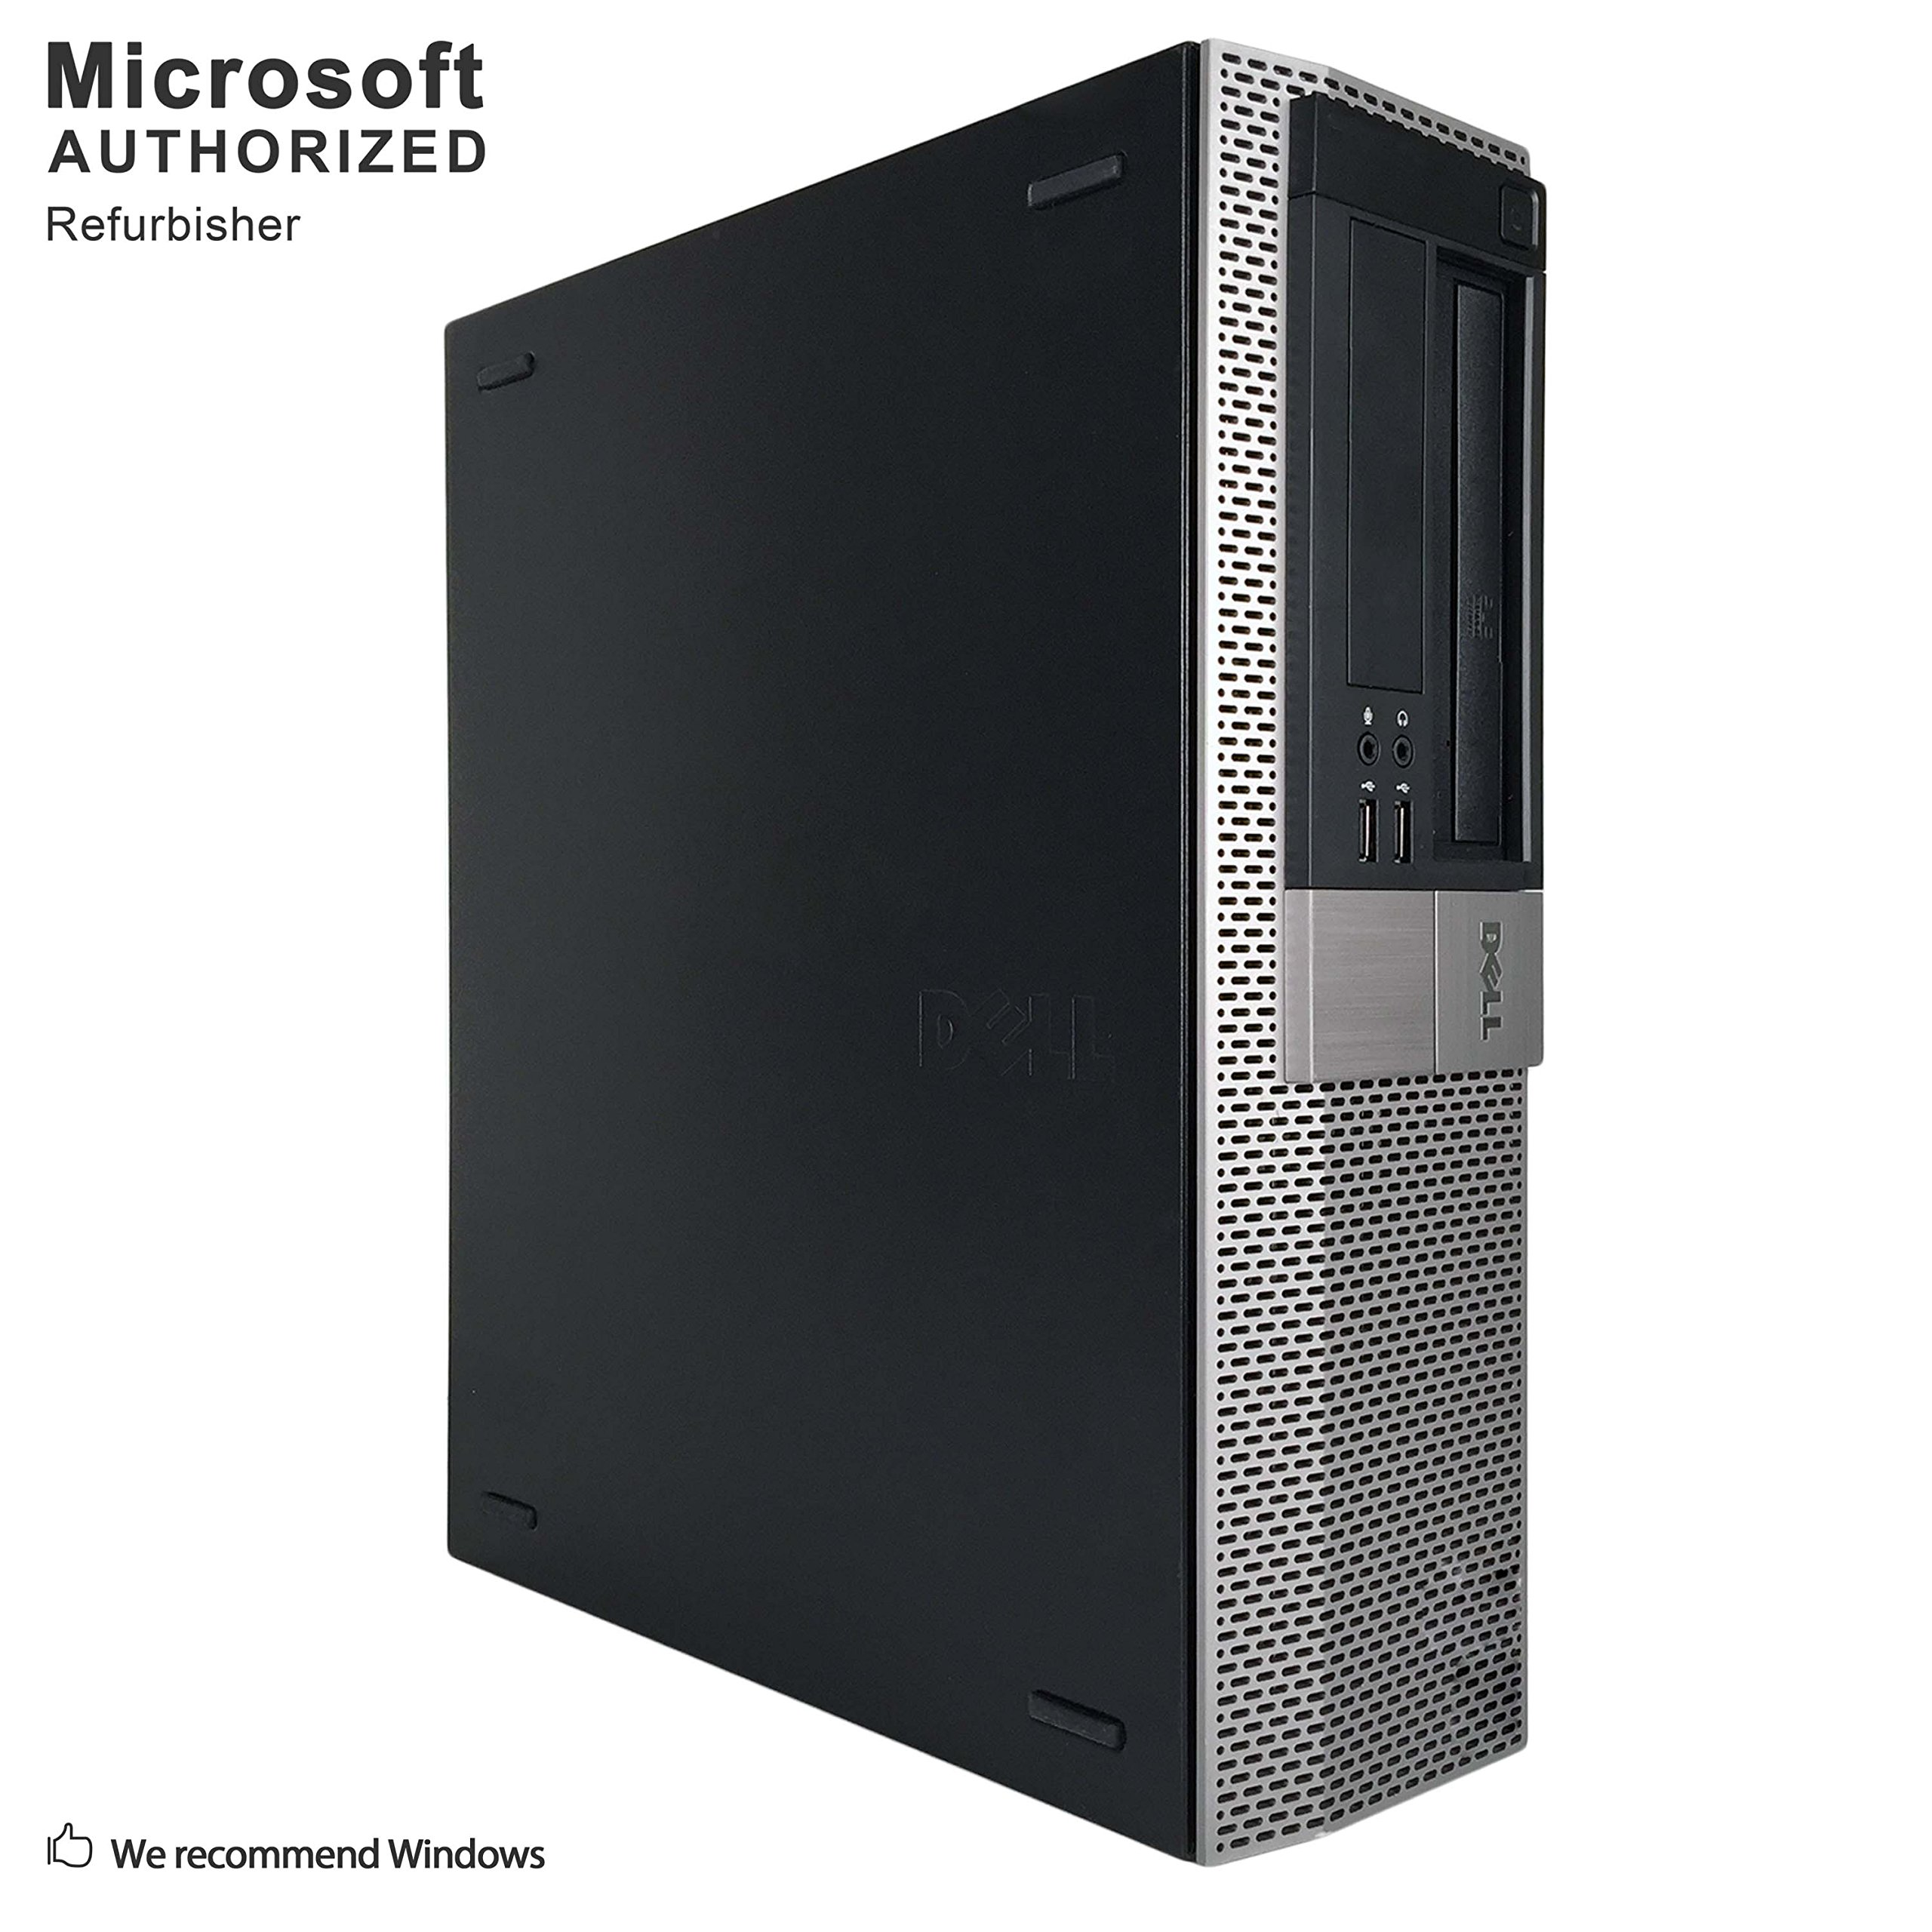 Dell 980 Business High Performance Desktop Computer PC (Intel CORE I7 870 2.93G,8G RAM DDR3,500G HDD,DVD,Windows 10 Professional)(Certified Refurbished) (Ci7 8G 500G Windows 10)